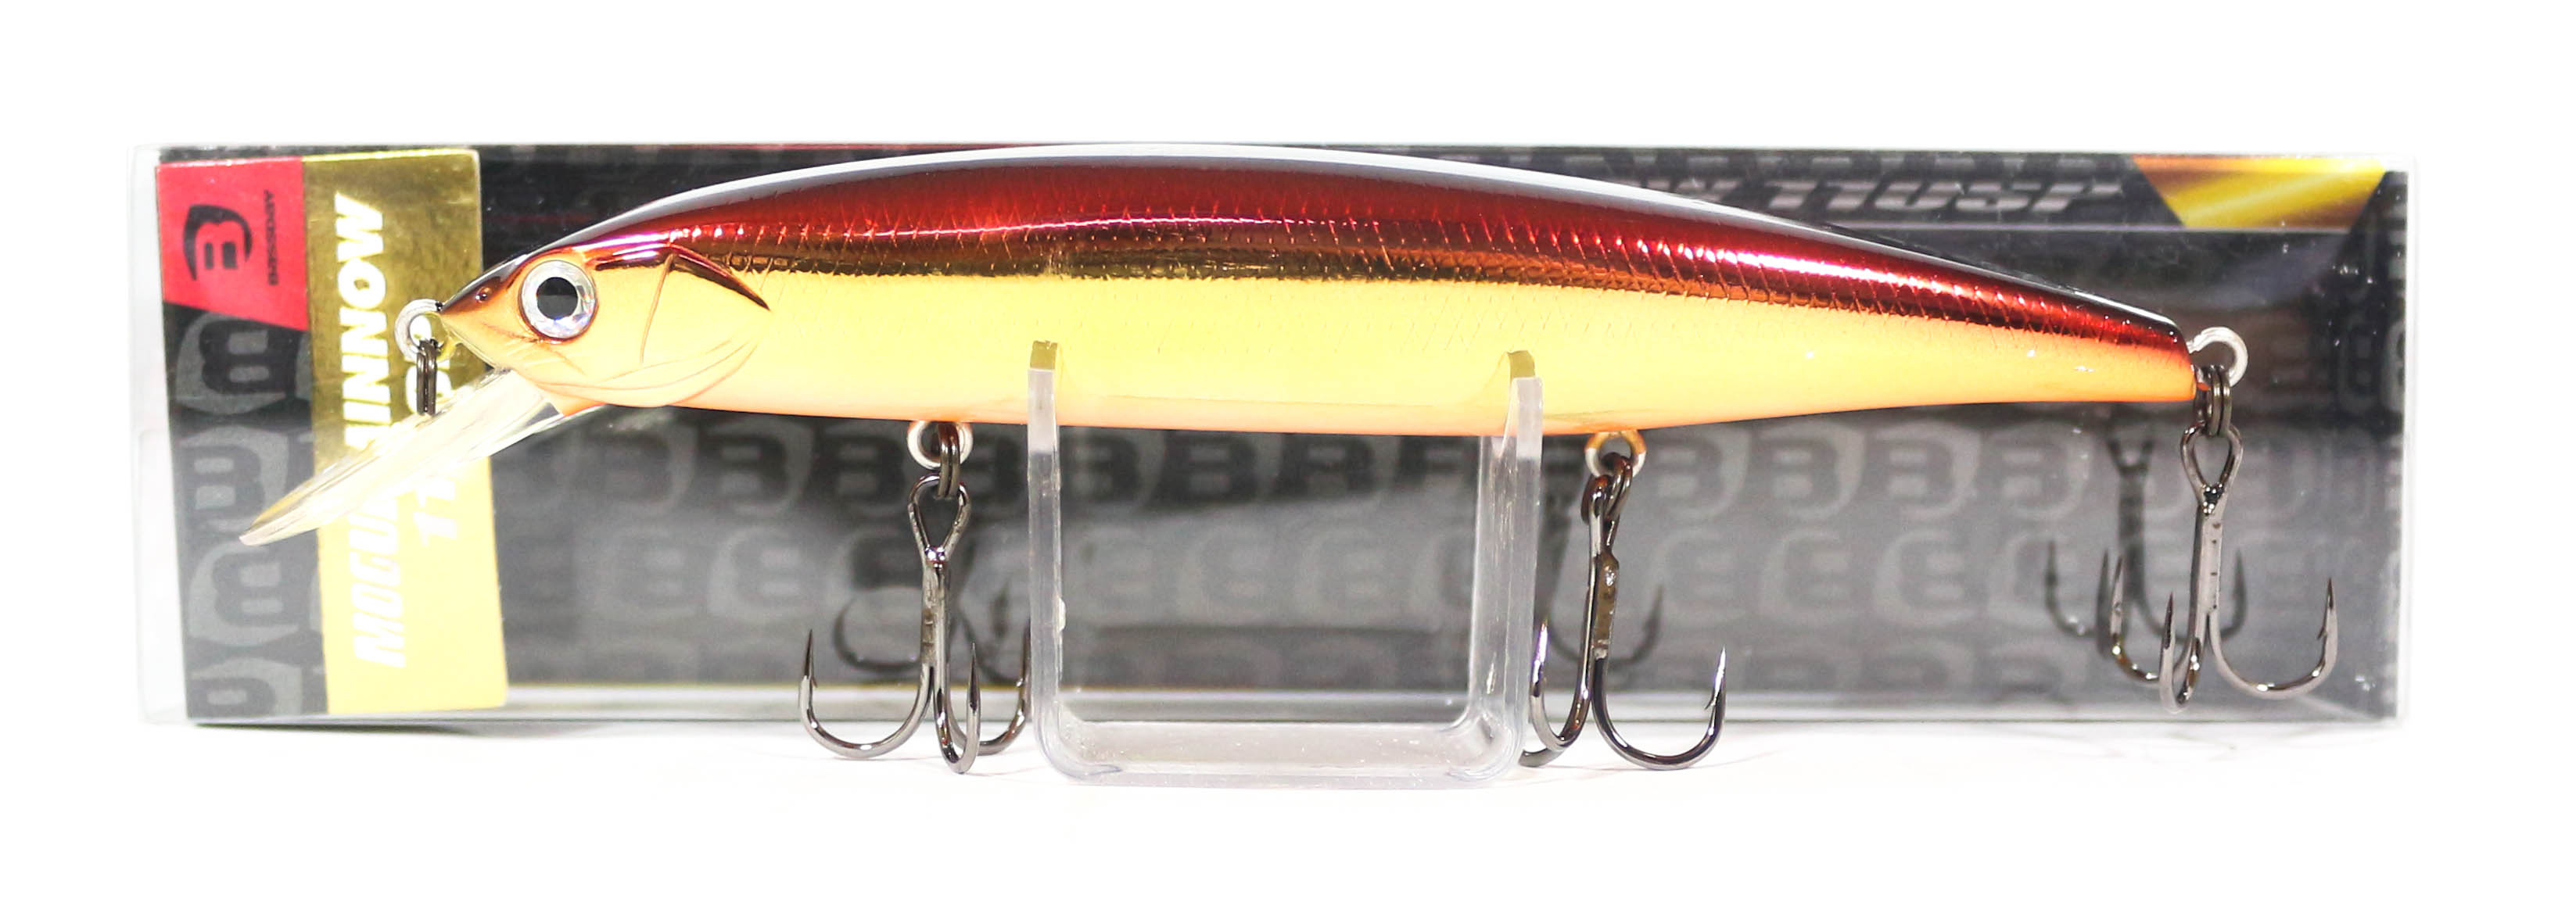 Bassday Mogul Minnow 110SP Suspend Lure 17 grams MH-49 (3116)